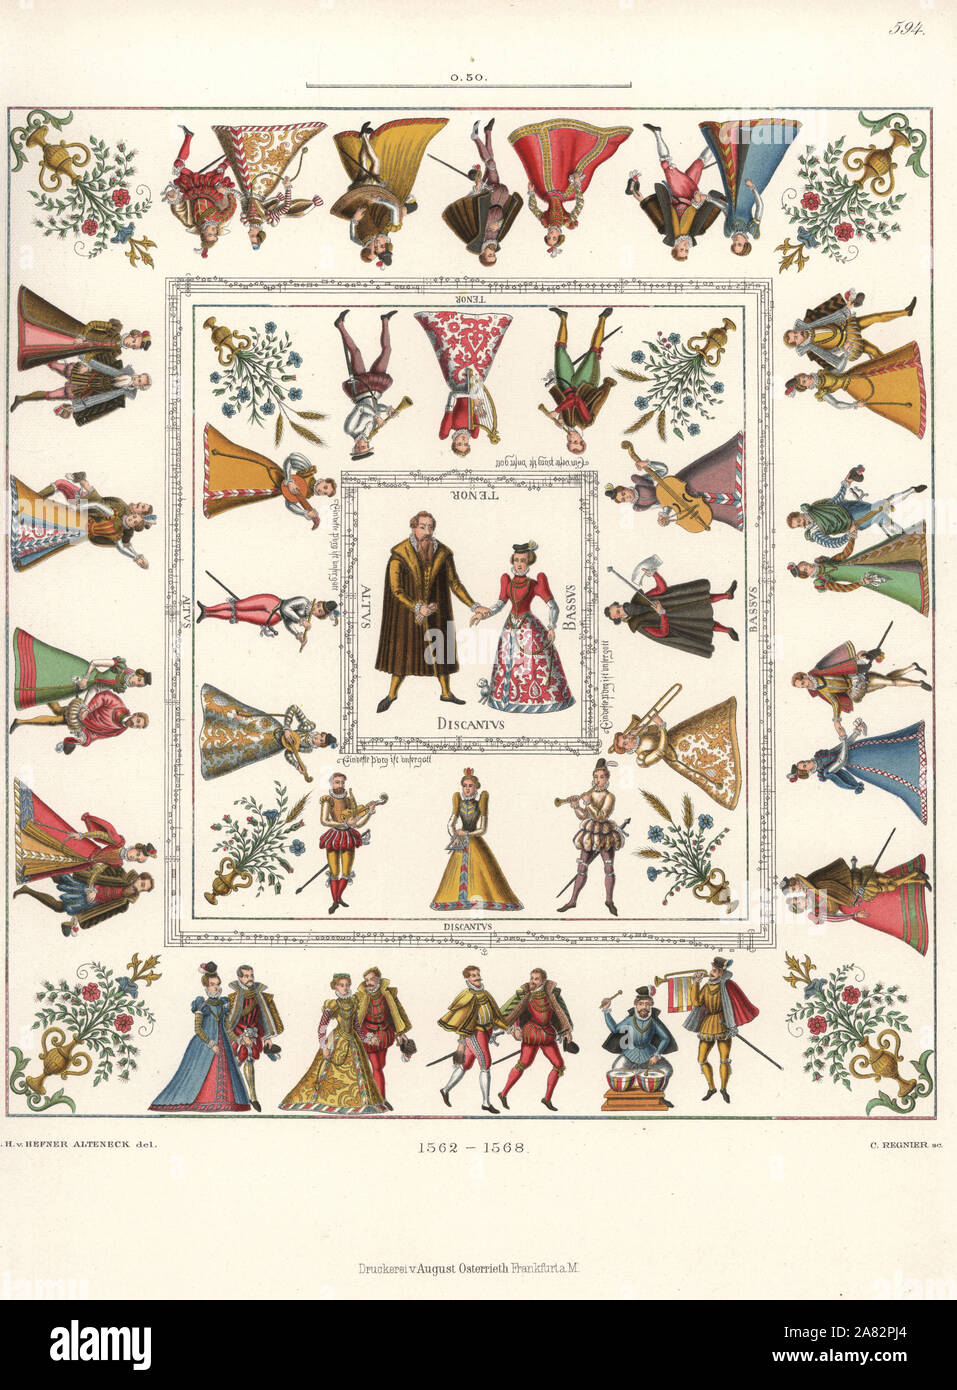 Tablecloth in white canvas decorated with images of the wedding of Count Poppo von Henneberg and Sophia von Braunschweig, with musicians, music notation, and courtiers dancing. Chromolithograph from Hefner-Alteneck's Costumes, Artworks and Appliances from the Middle Ages to the 17th Century, Frankfurt, 1889. Illustration by Dr. Jakob Heinrich von Hefner-Alteneck, lithographed by C. Regnier. Dr. Hefner-Alteneck (1811-1903) was a German museum curator, archaeologist, art historian, illustrator and etcher. Stock Photo